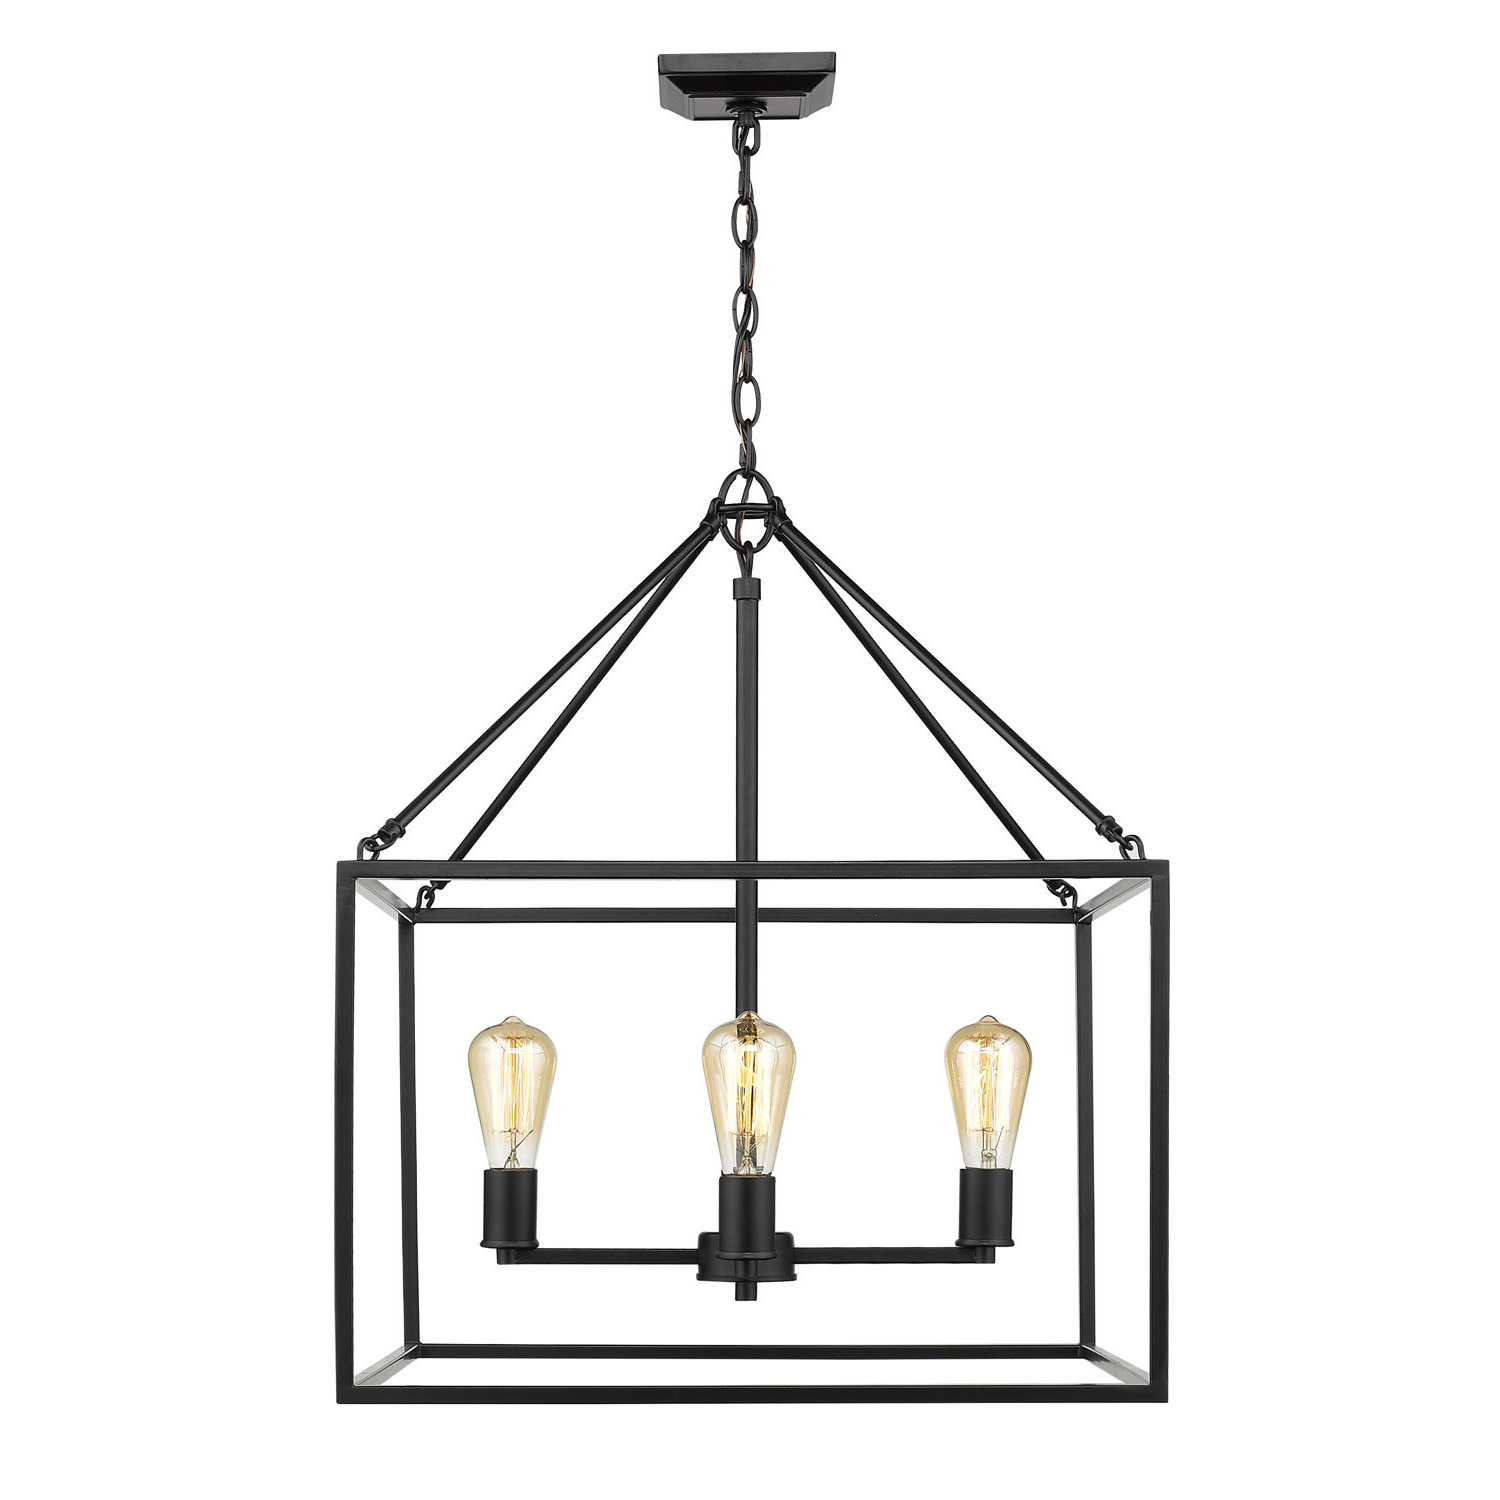 Zabel 4 Light Lantern Square / Rectangle Pendant Throughout Most Up To Date Sherri Ann 3 Light Lantern Square / Rectangle Pendants (View 9 of 25)